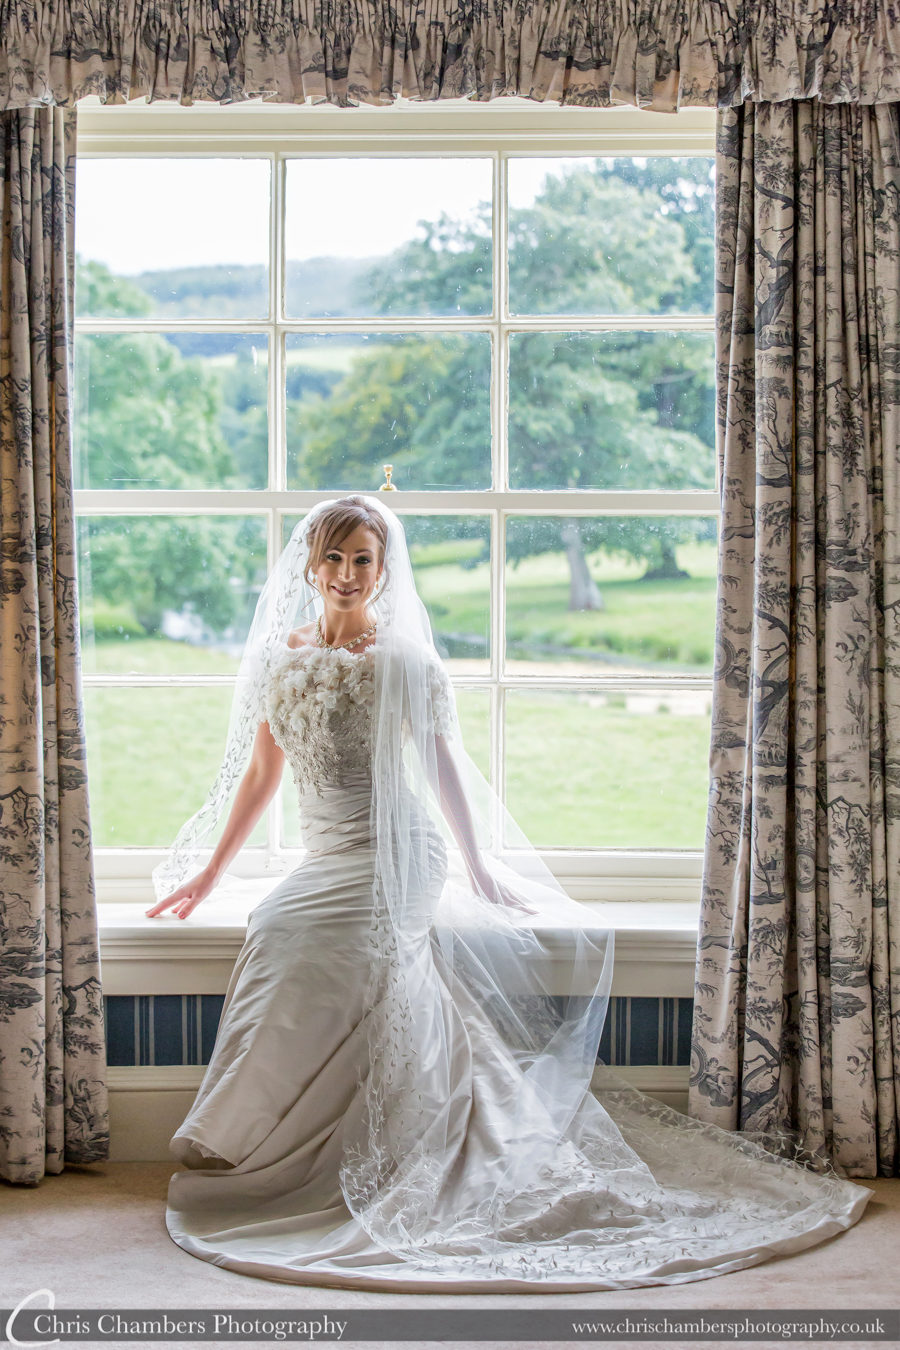 Award winning wedding photography at Swinton Park